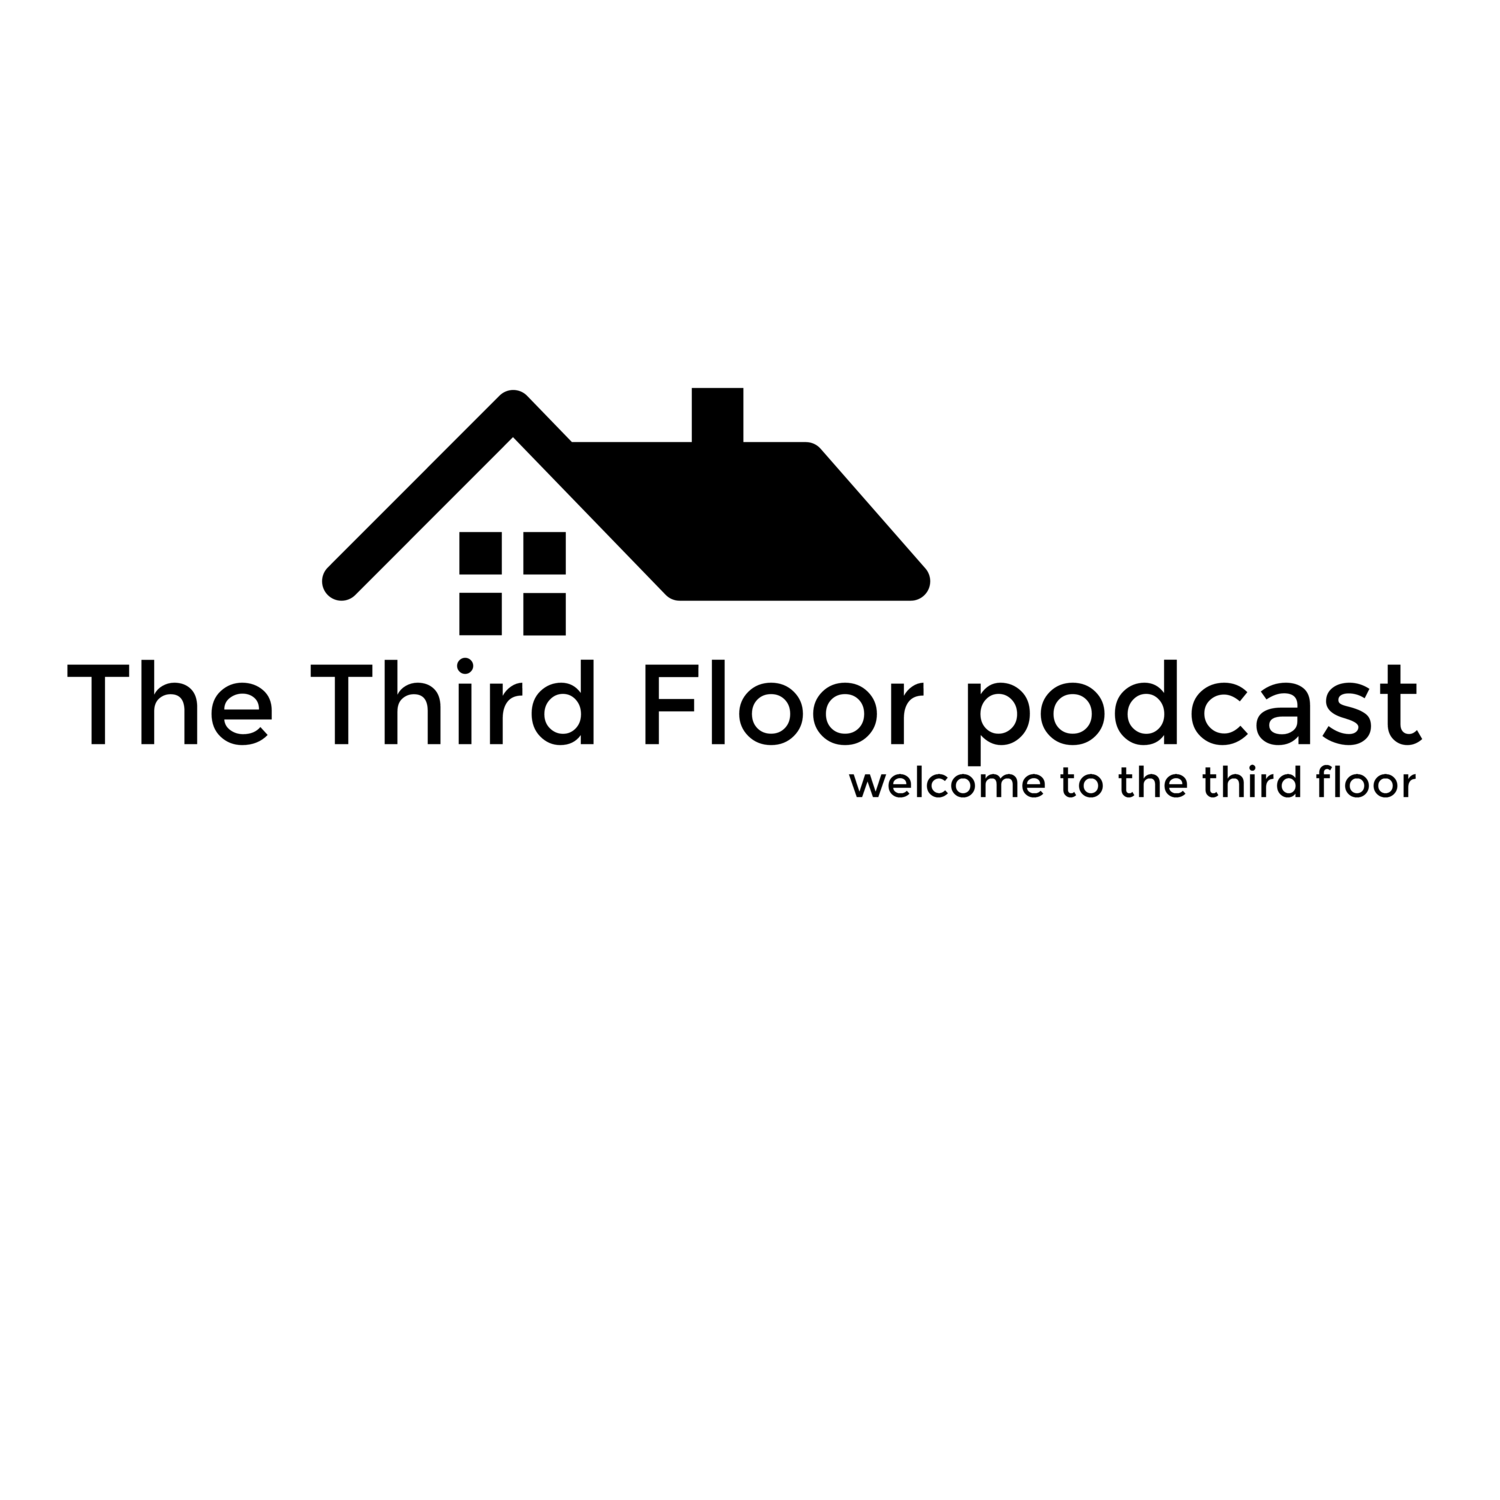 The Third Floor Podcast - The Third Floor Podcast